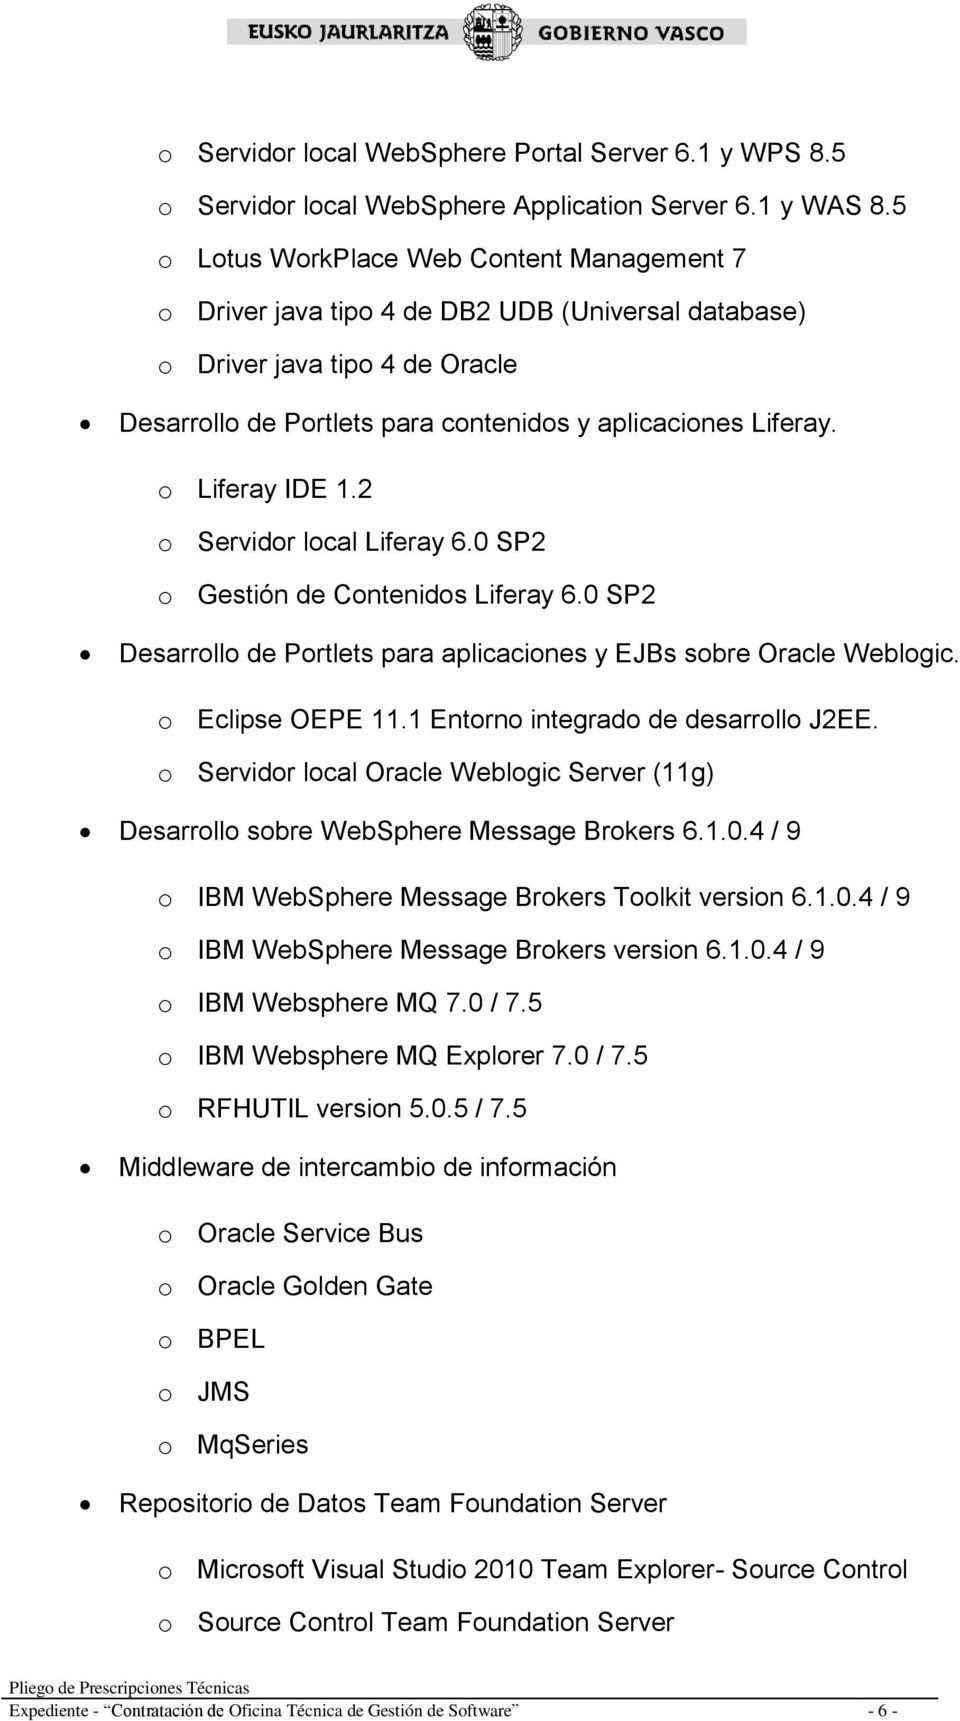 o Liferay IDE 1.2 o Servidor local Liferay 6.0 SP2 o Gestión de Contenidos Liferay 6.0 SP2 Desarrollo de Portlets para aplicaciones y EJBs sobre Oracle Weblogic. o Eclipse OEPE 11.